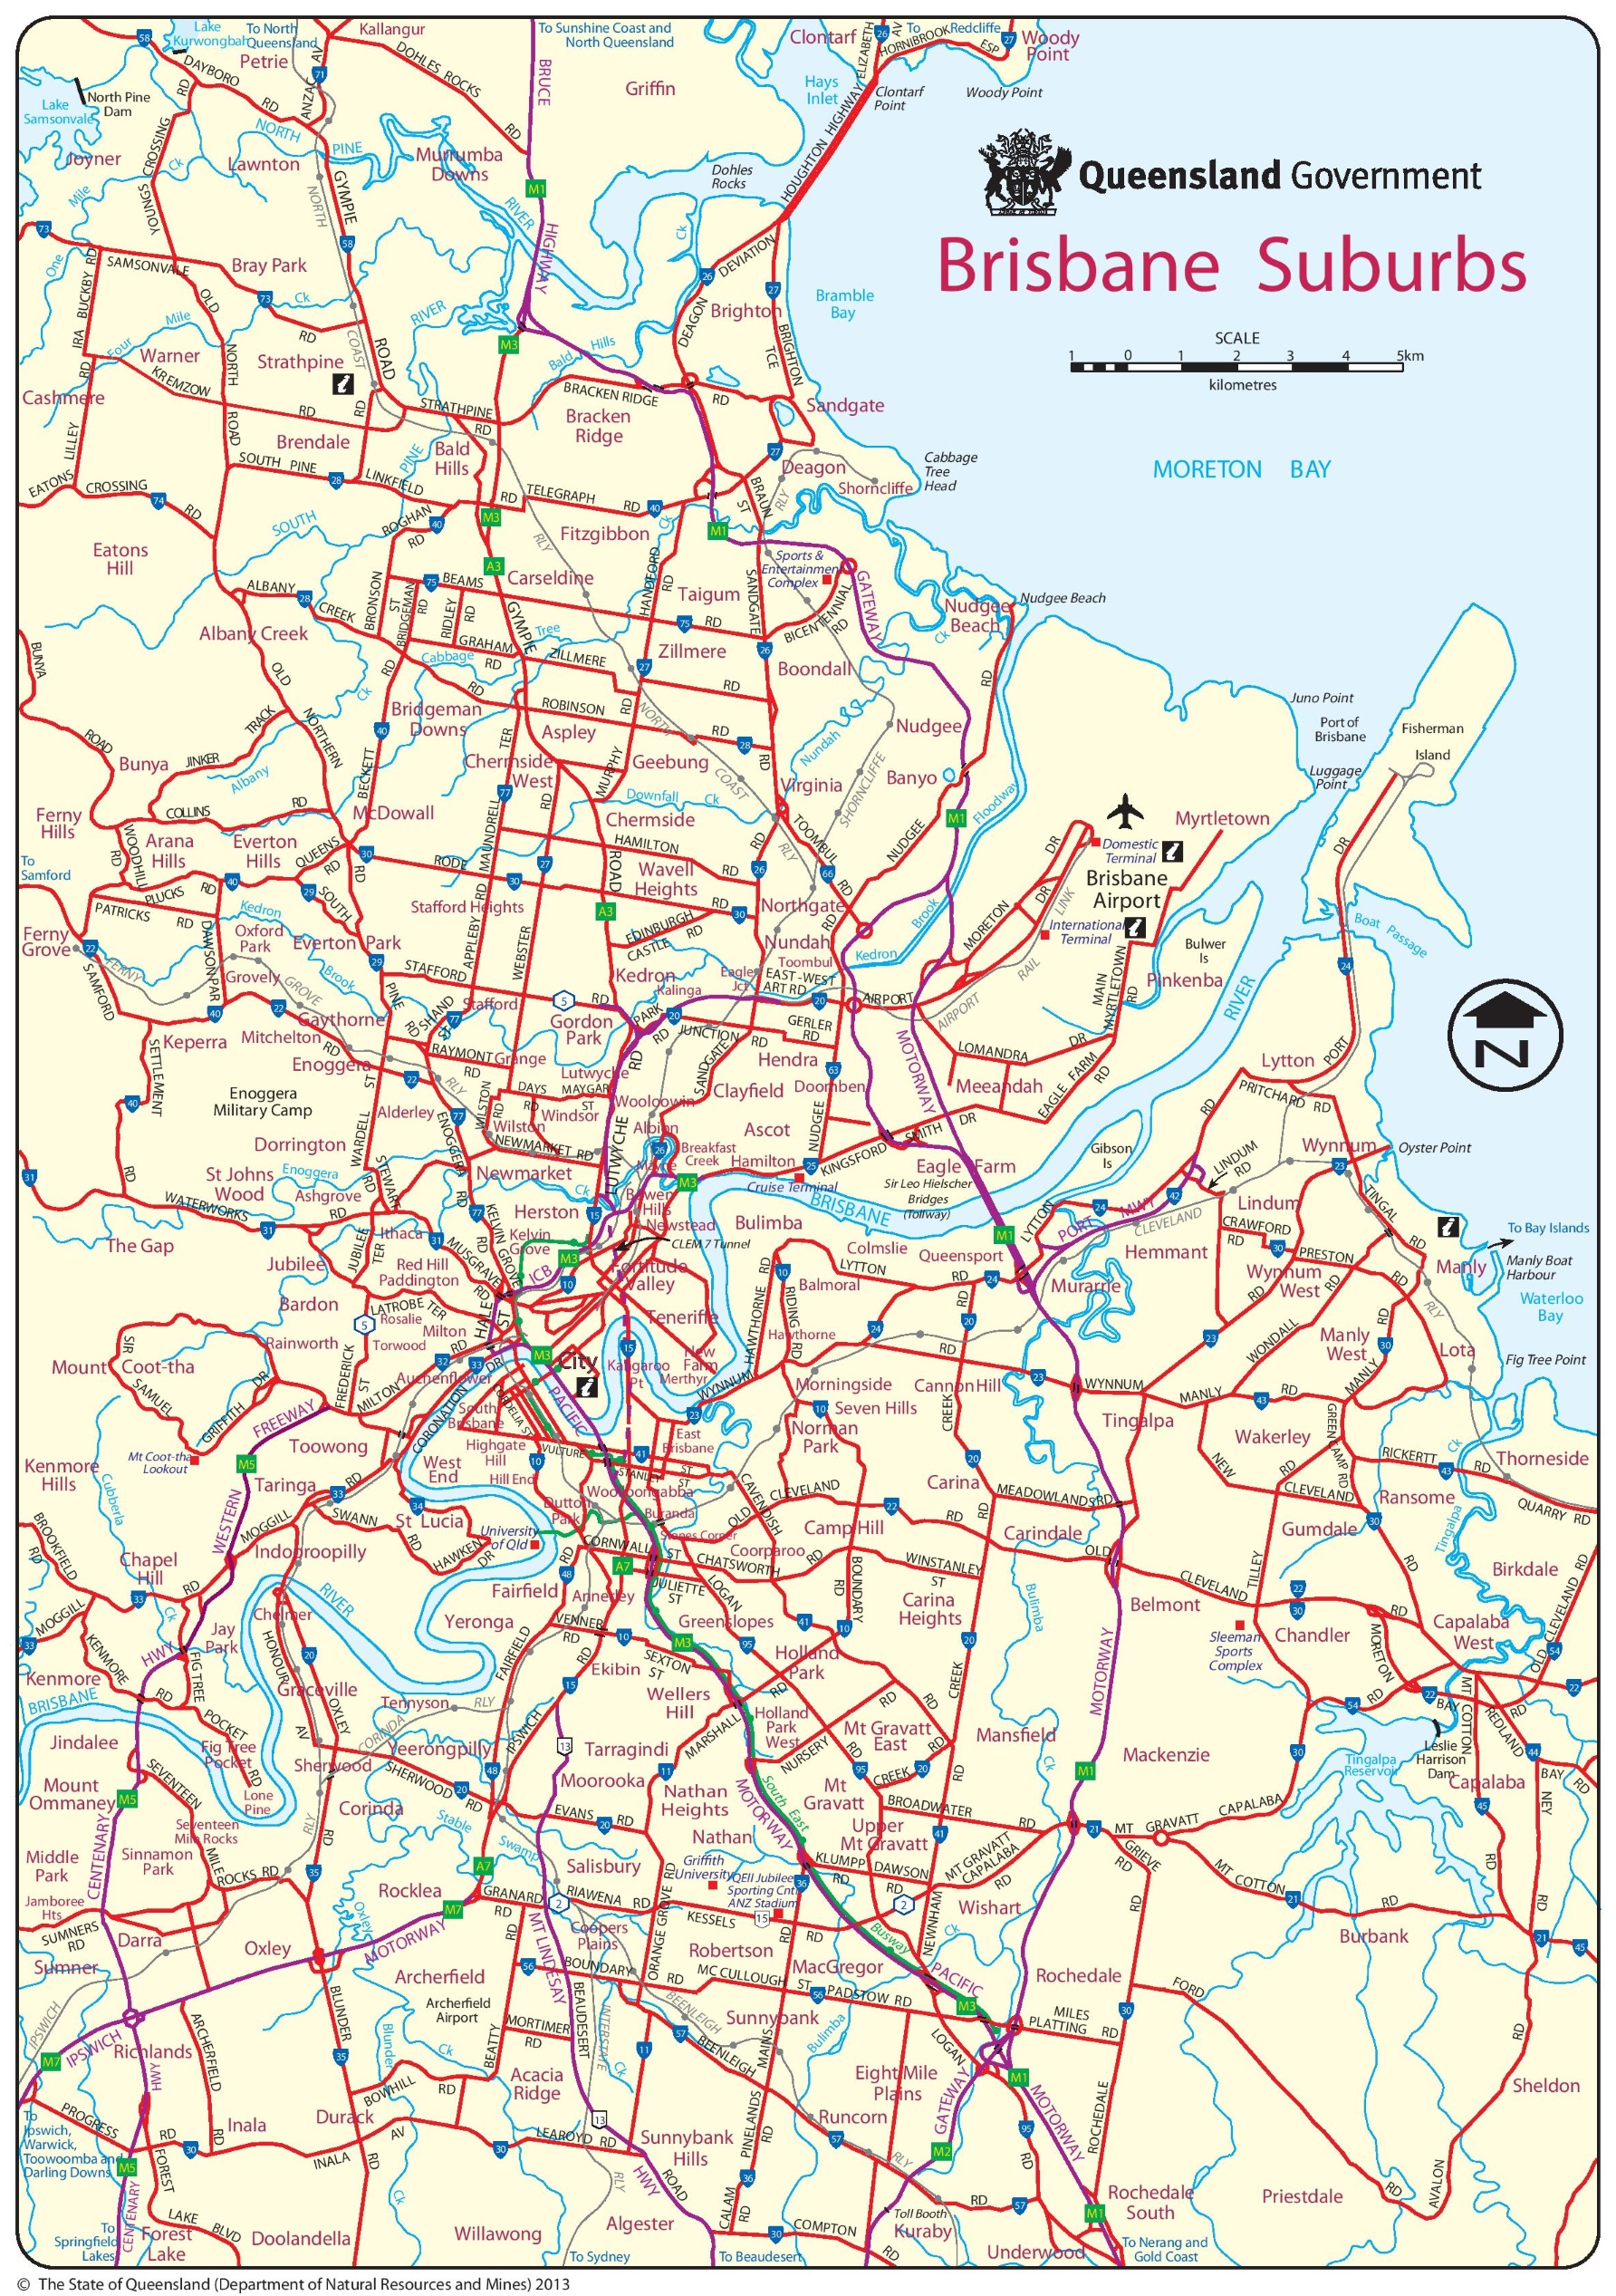 Brisbane Suburb Map Brisbane suburbs map